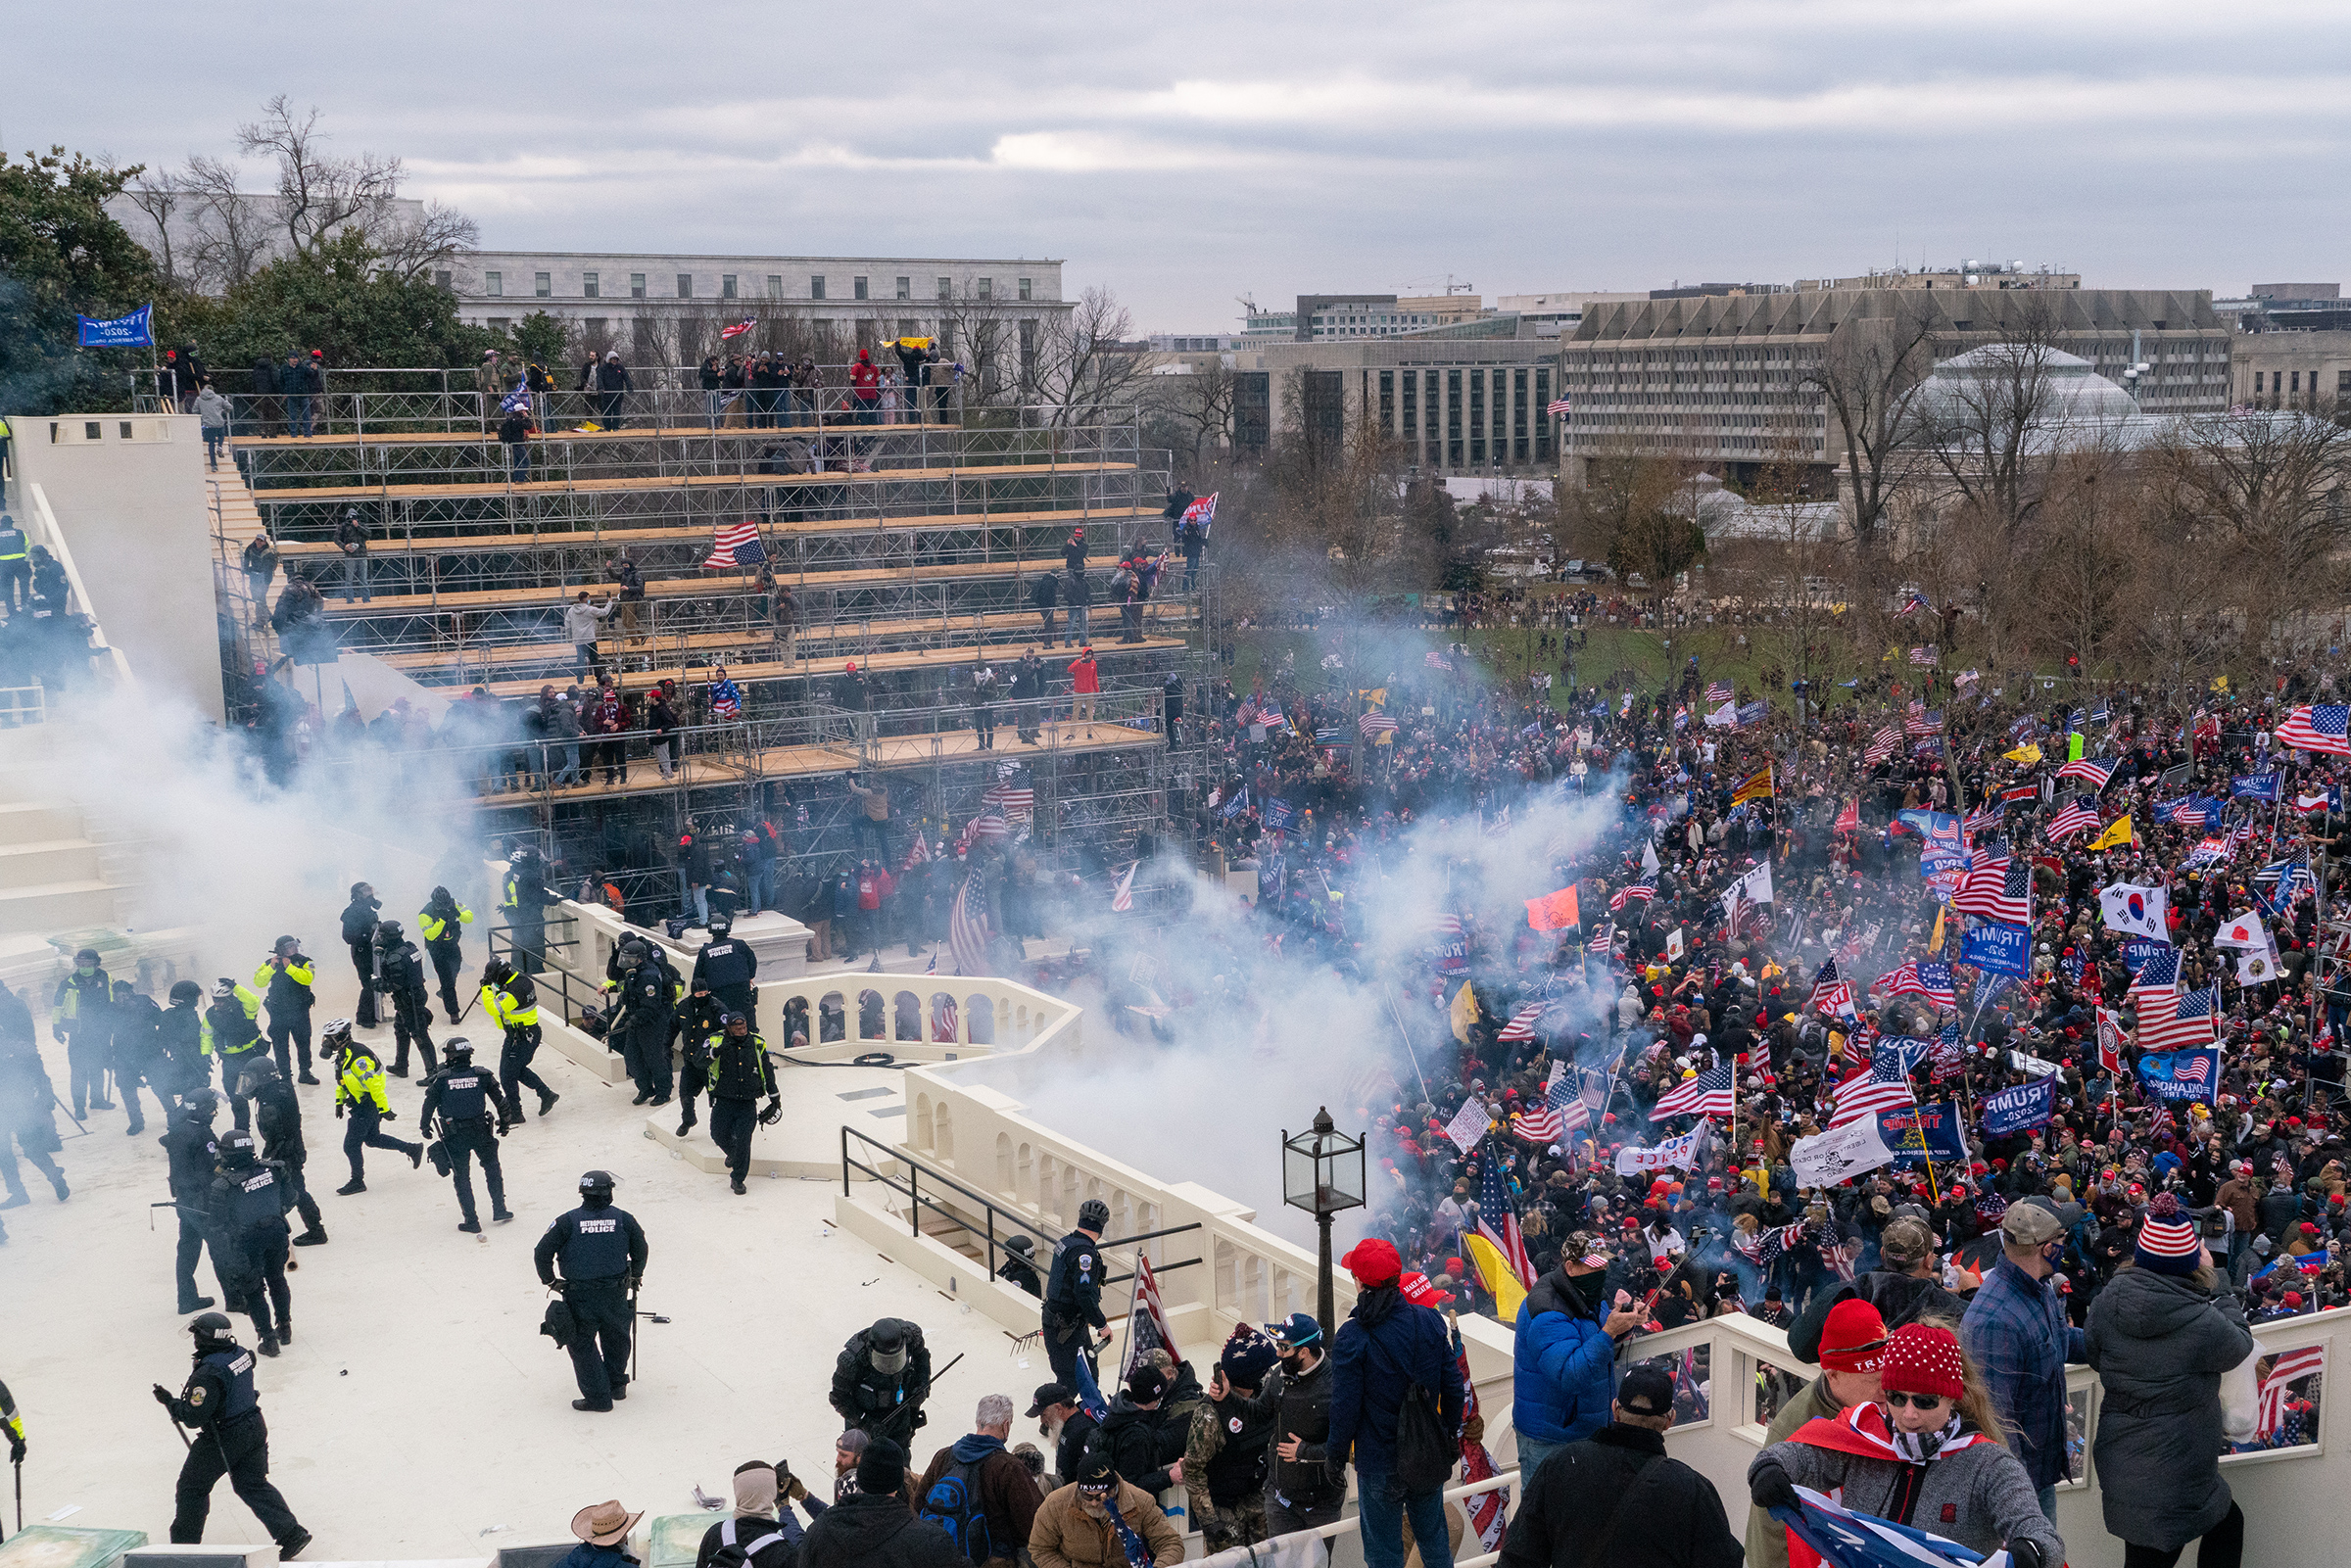 Rioters objecting to the certification of President-elect Joe Biden by Congress were briefly blocked by police outside the Capitol before gaining entry on Jan. 6. They wreaked havoc before being expelled.